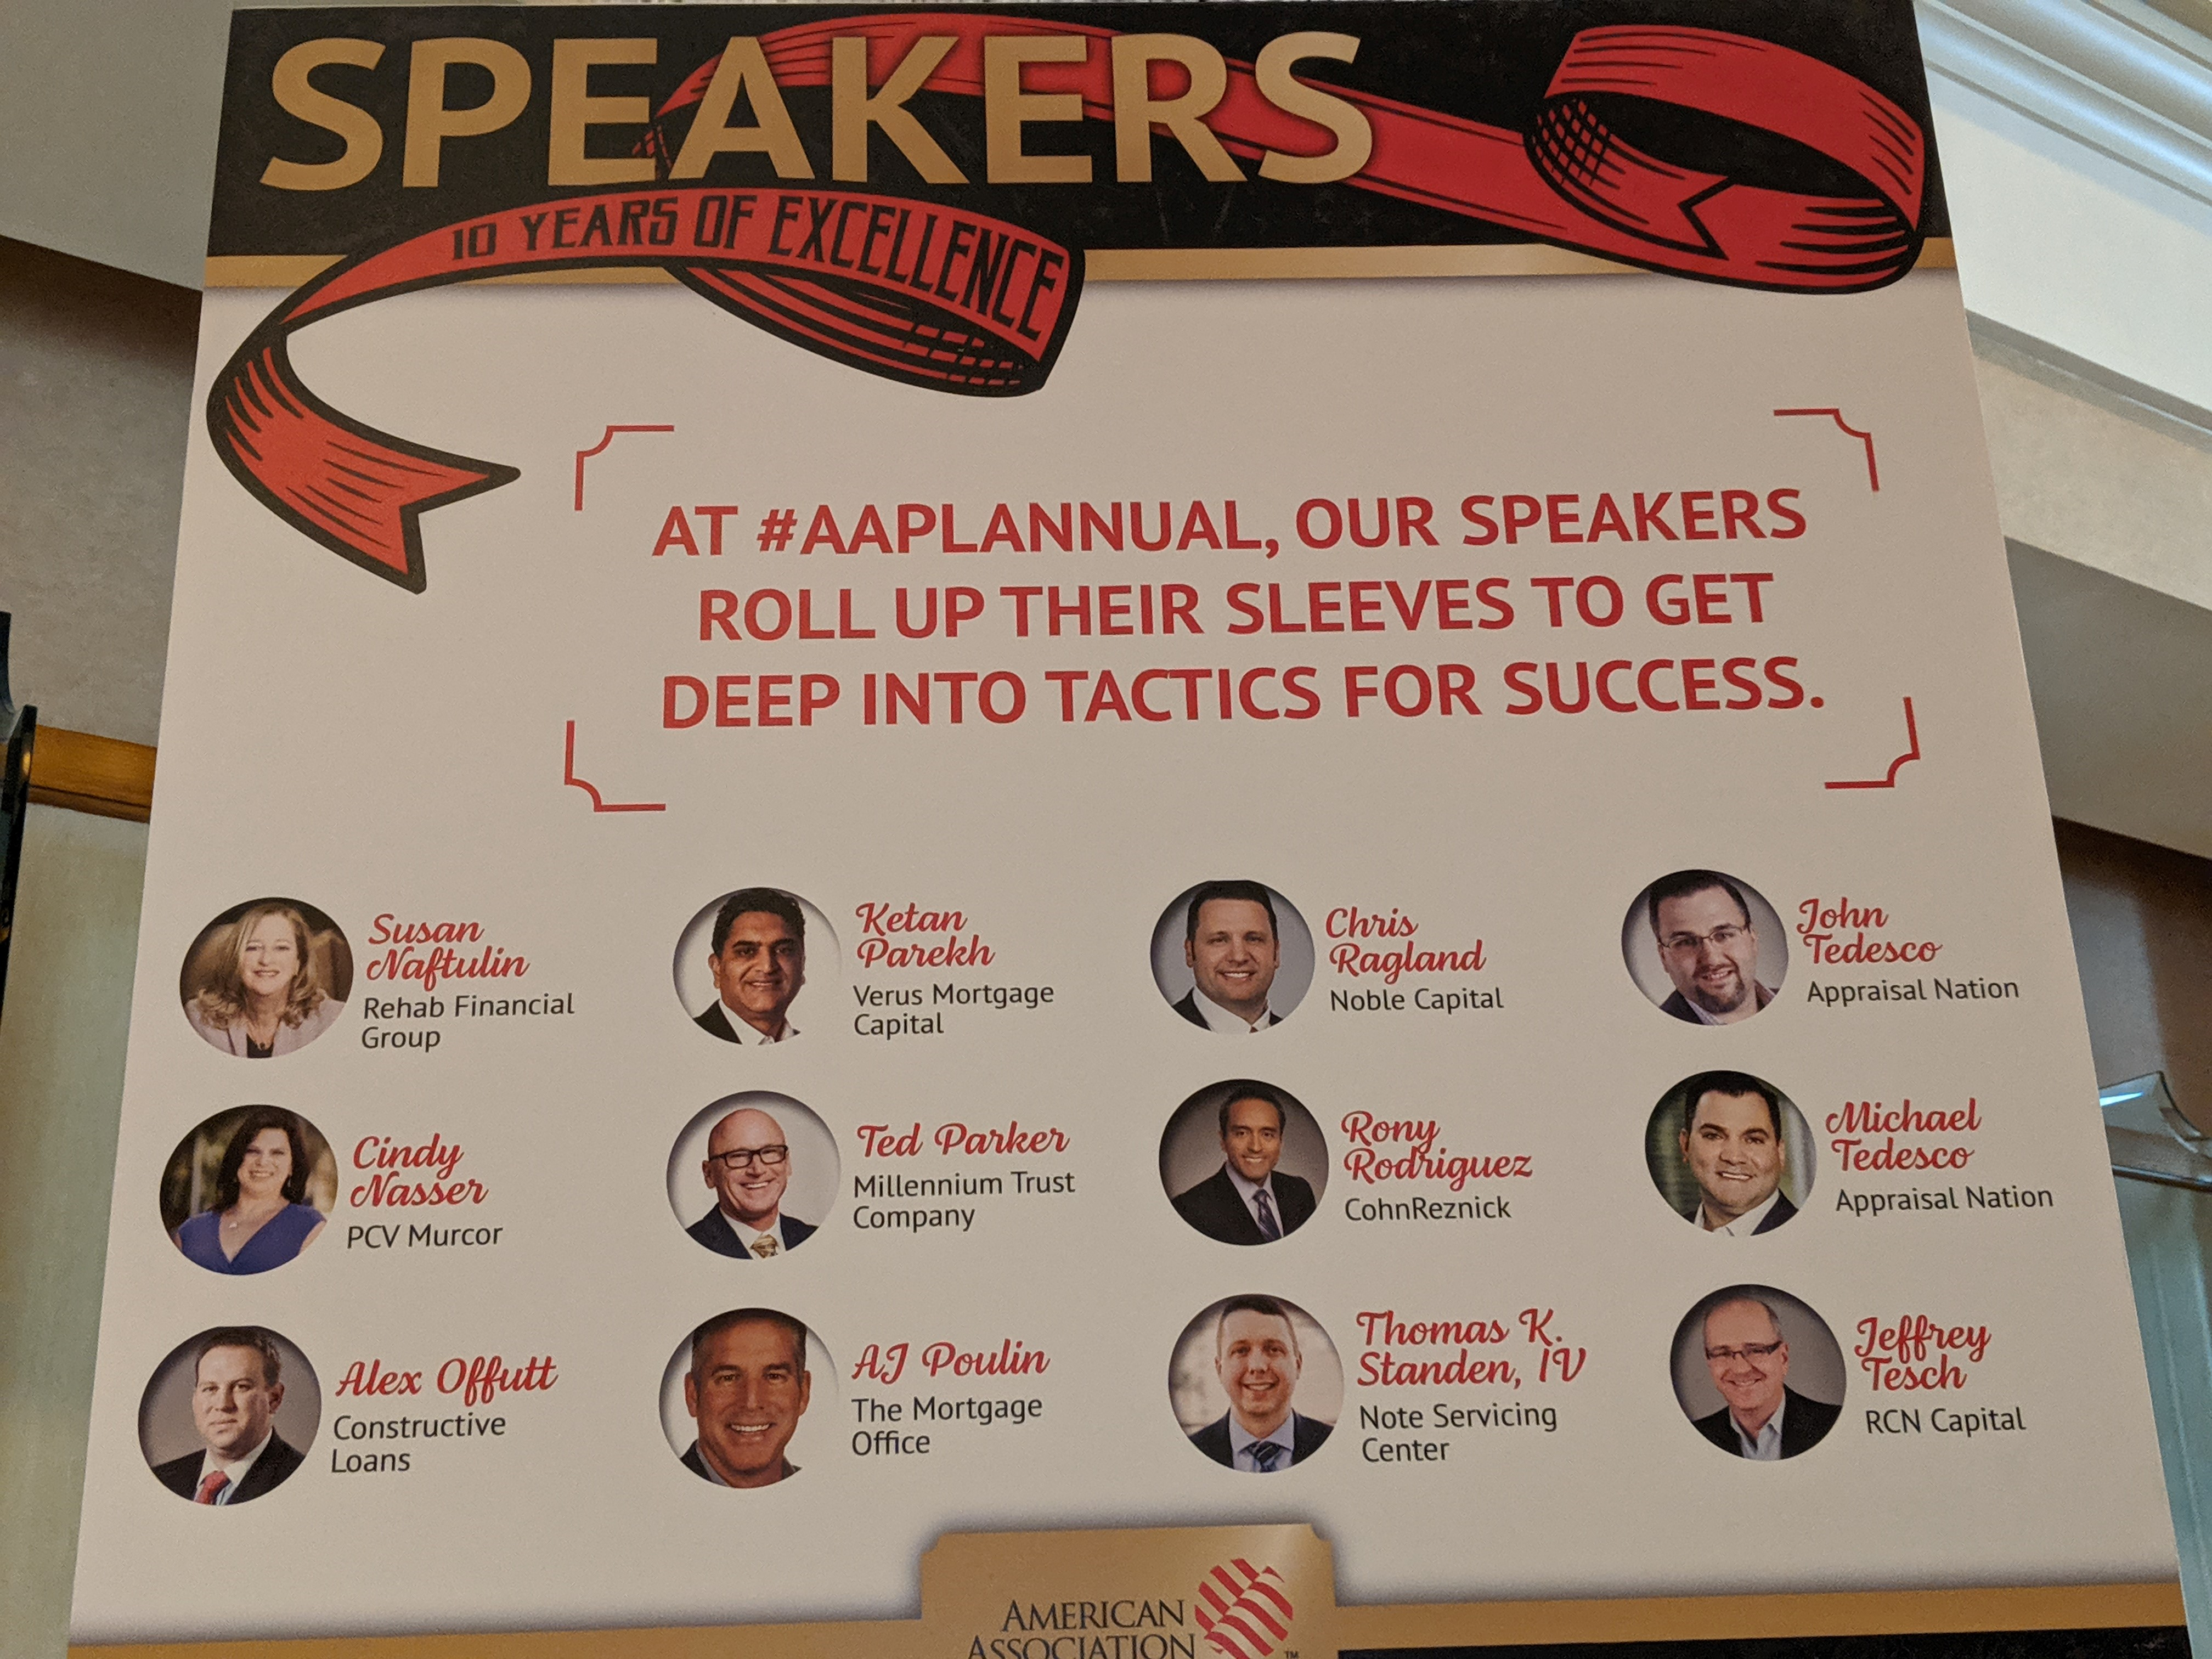 AAPL Speakers - Annual AAPL Conference